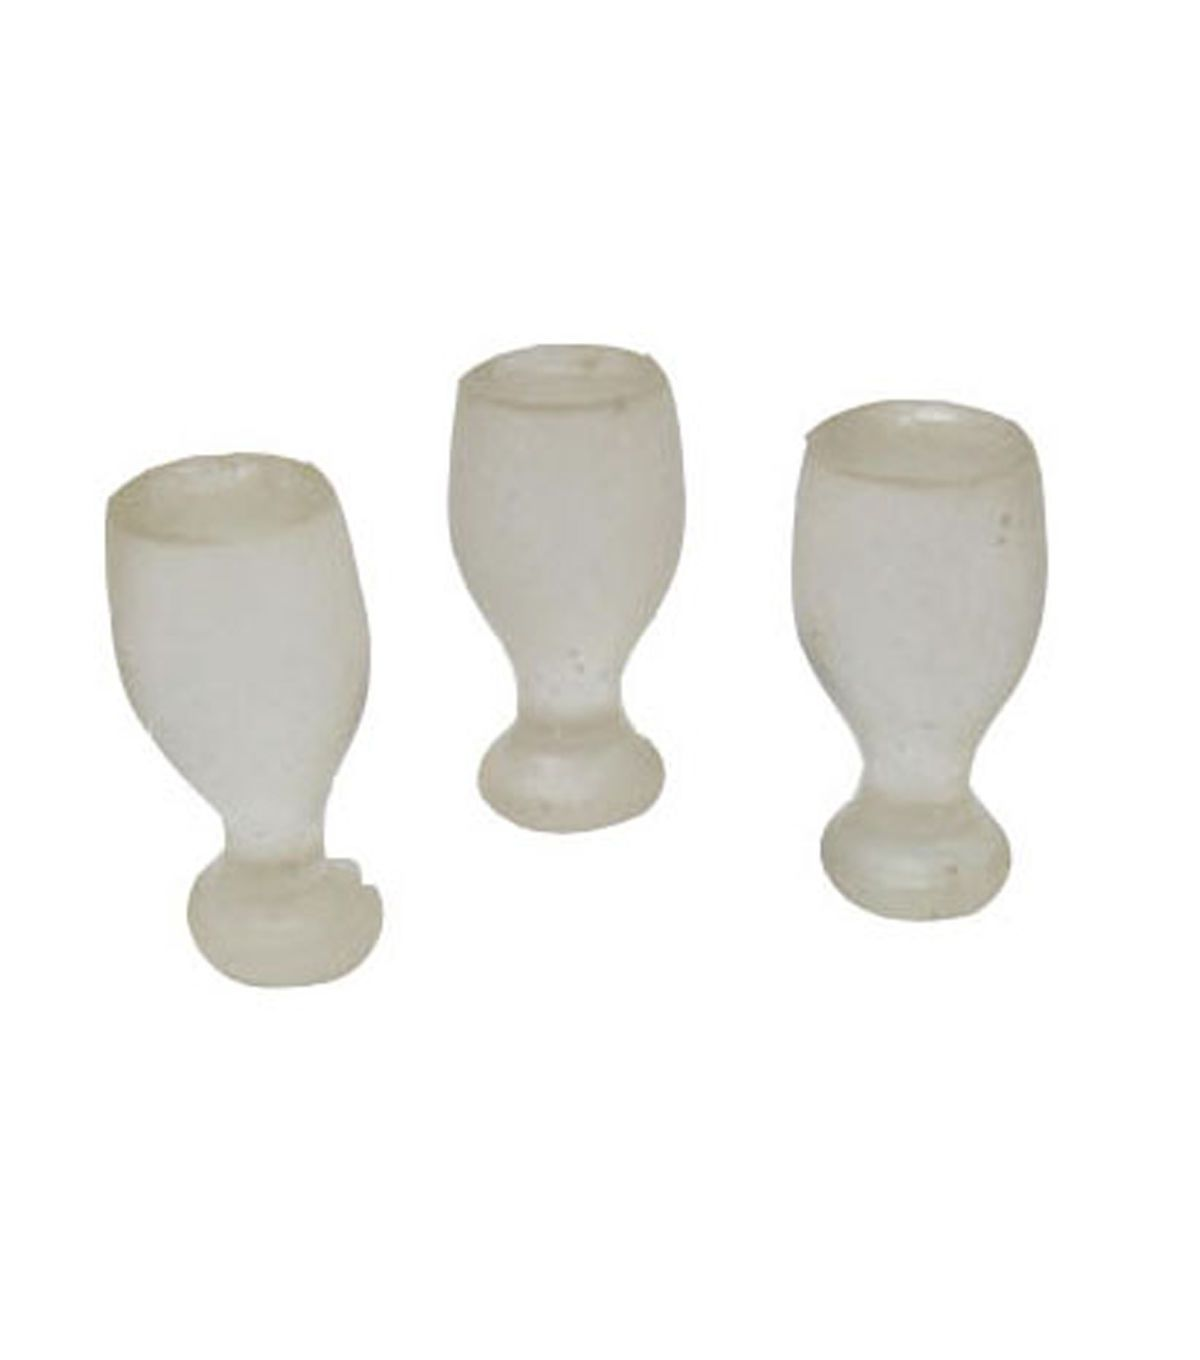 Bloom room littles pack of resin goblets changue and resins